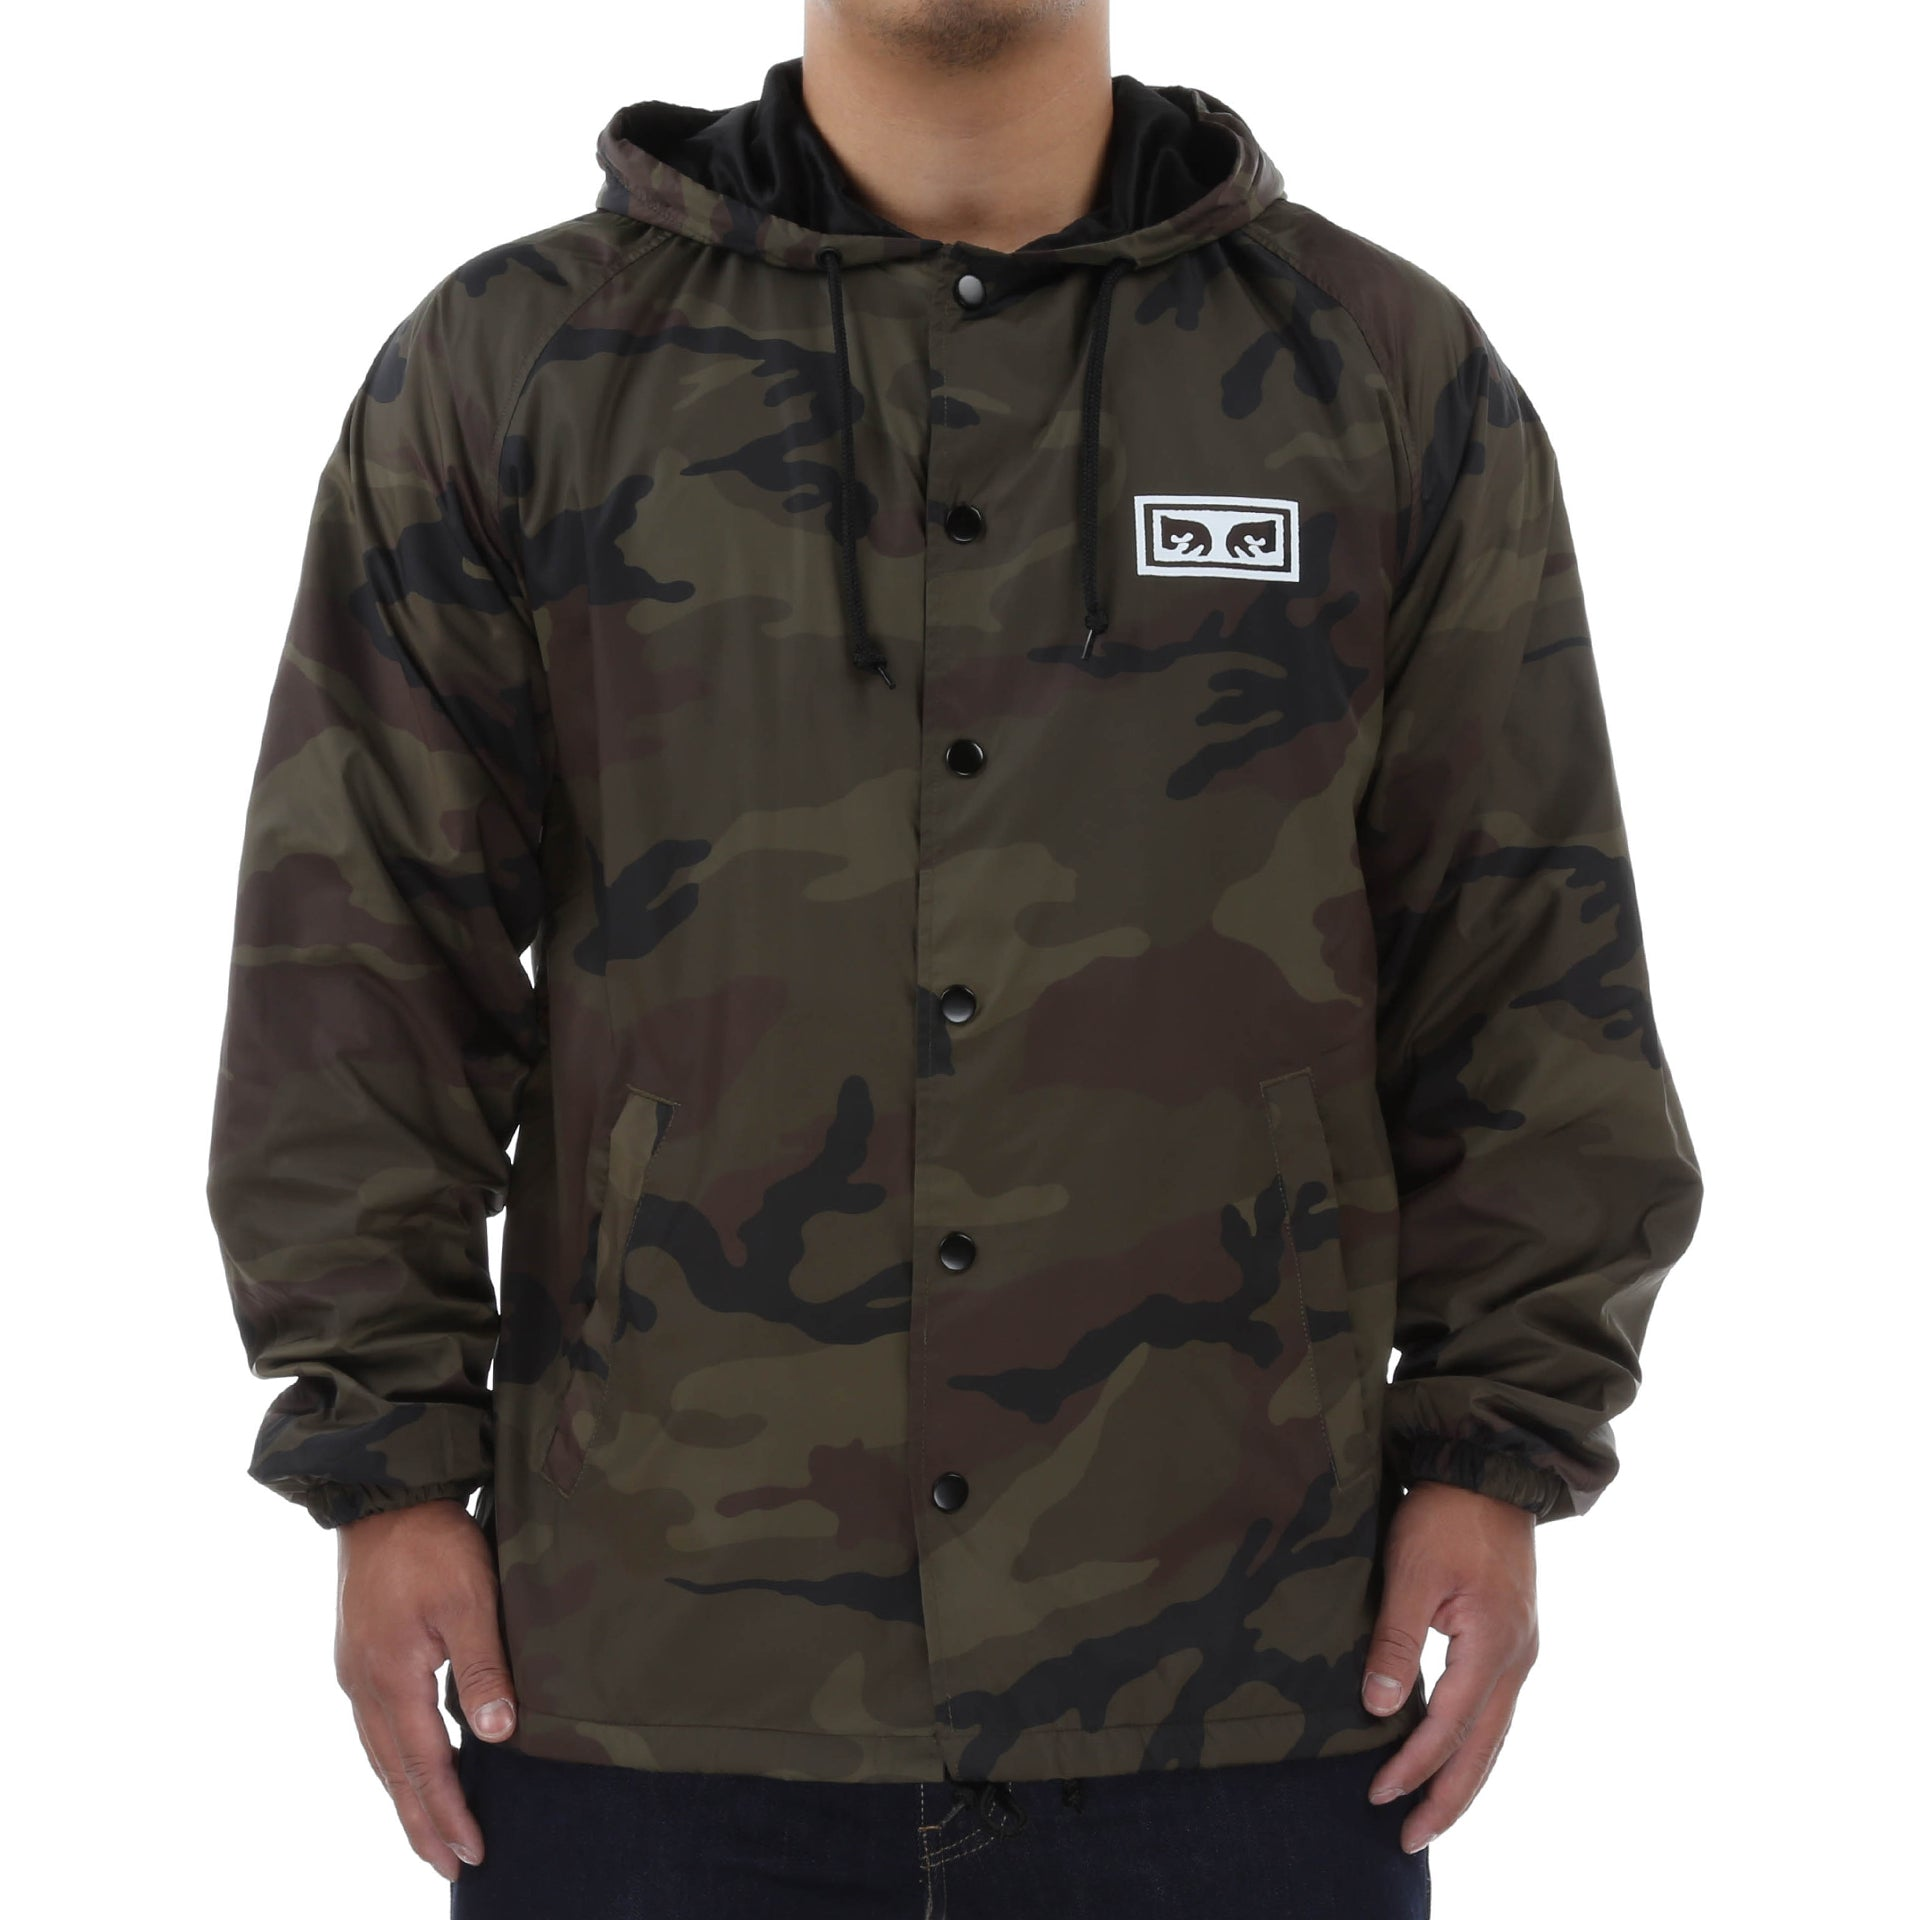 bfcf547b39b62 Obey No One Hooded Coaches Jacket - Camo - New Star